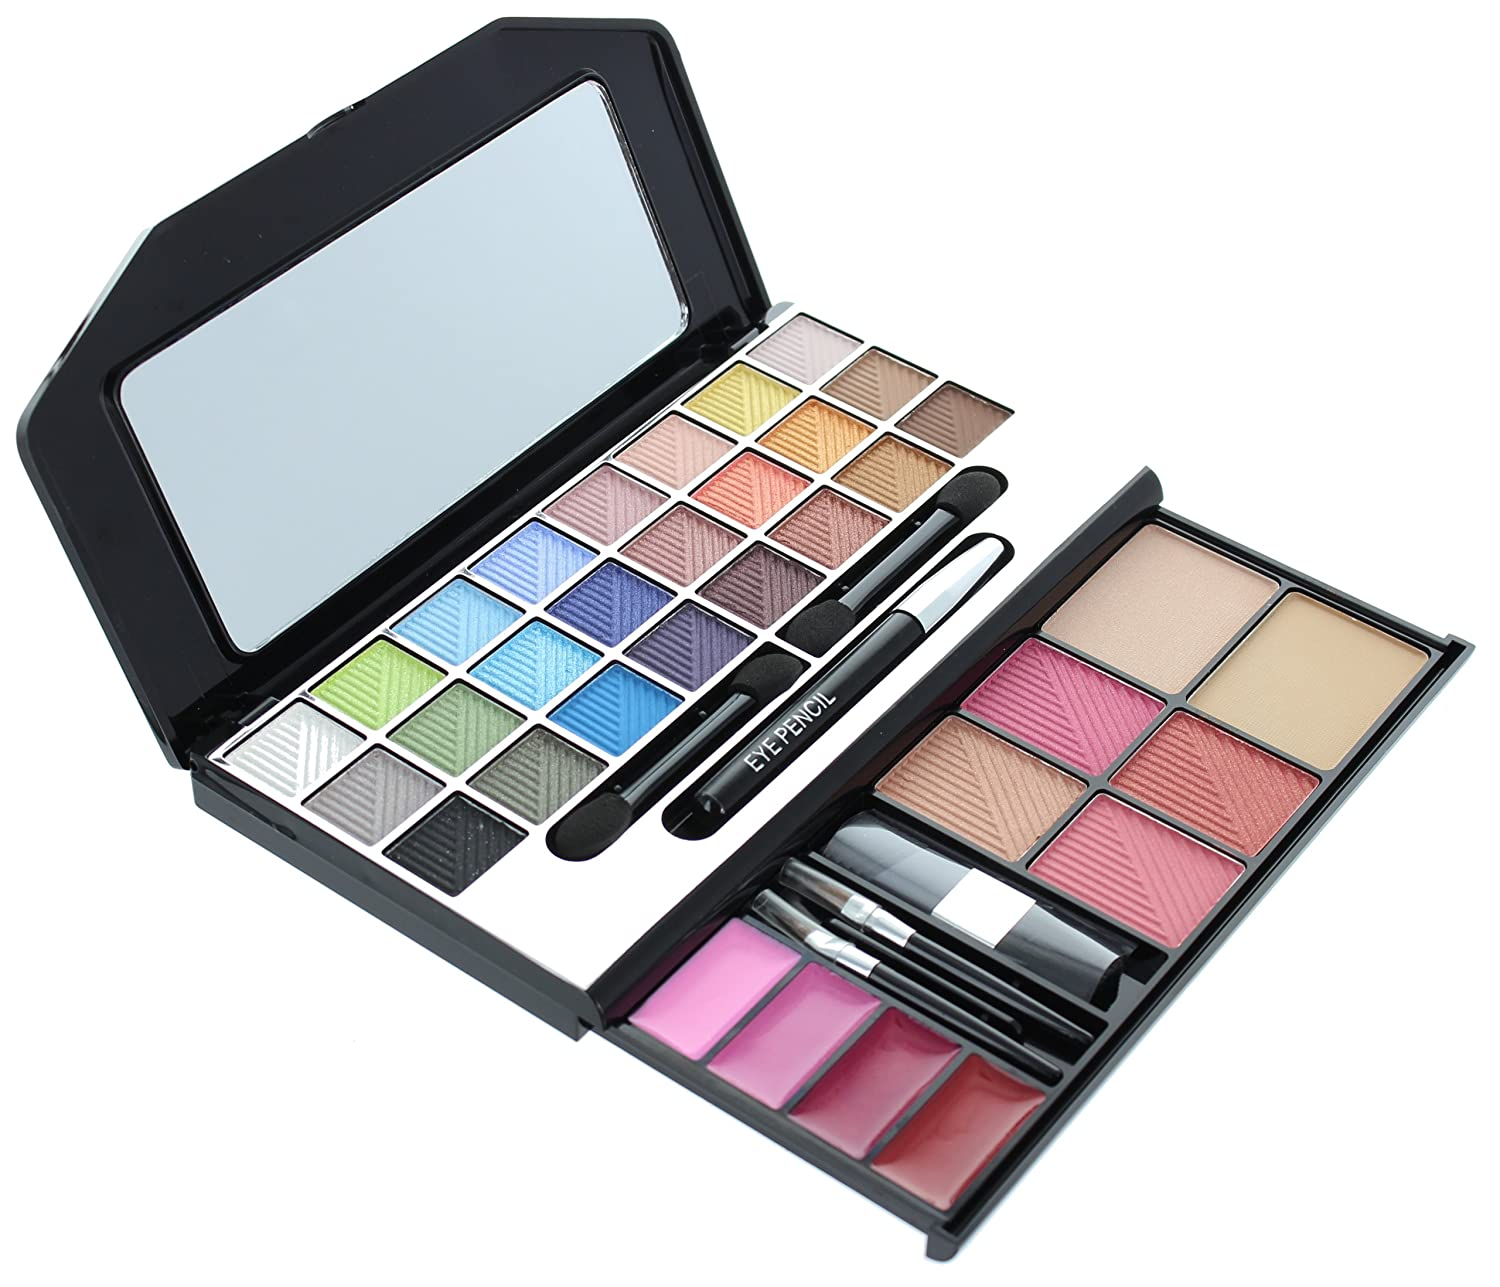 ETA-34-Runway-Colors-Complete-Makeover-Kit-With-Brushes-Eye-Pencil-And-Mirror-2-4-oz